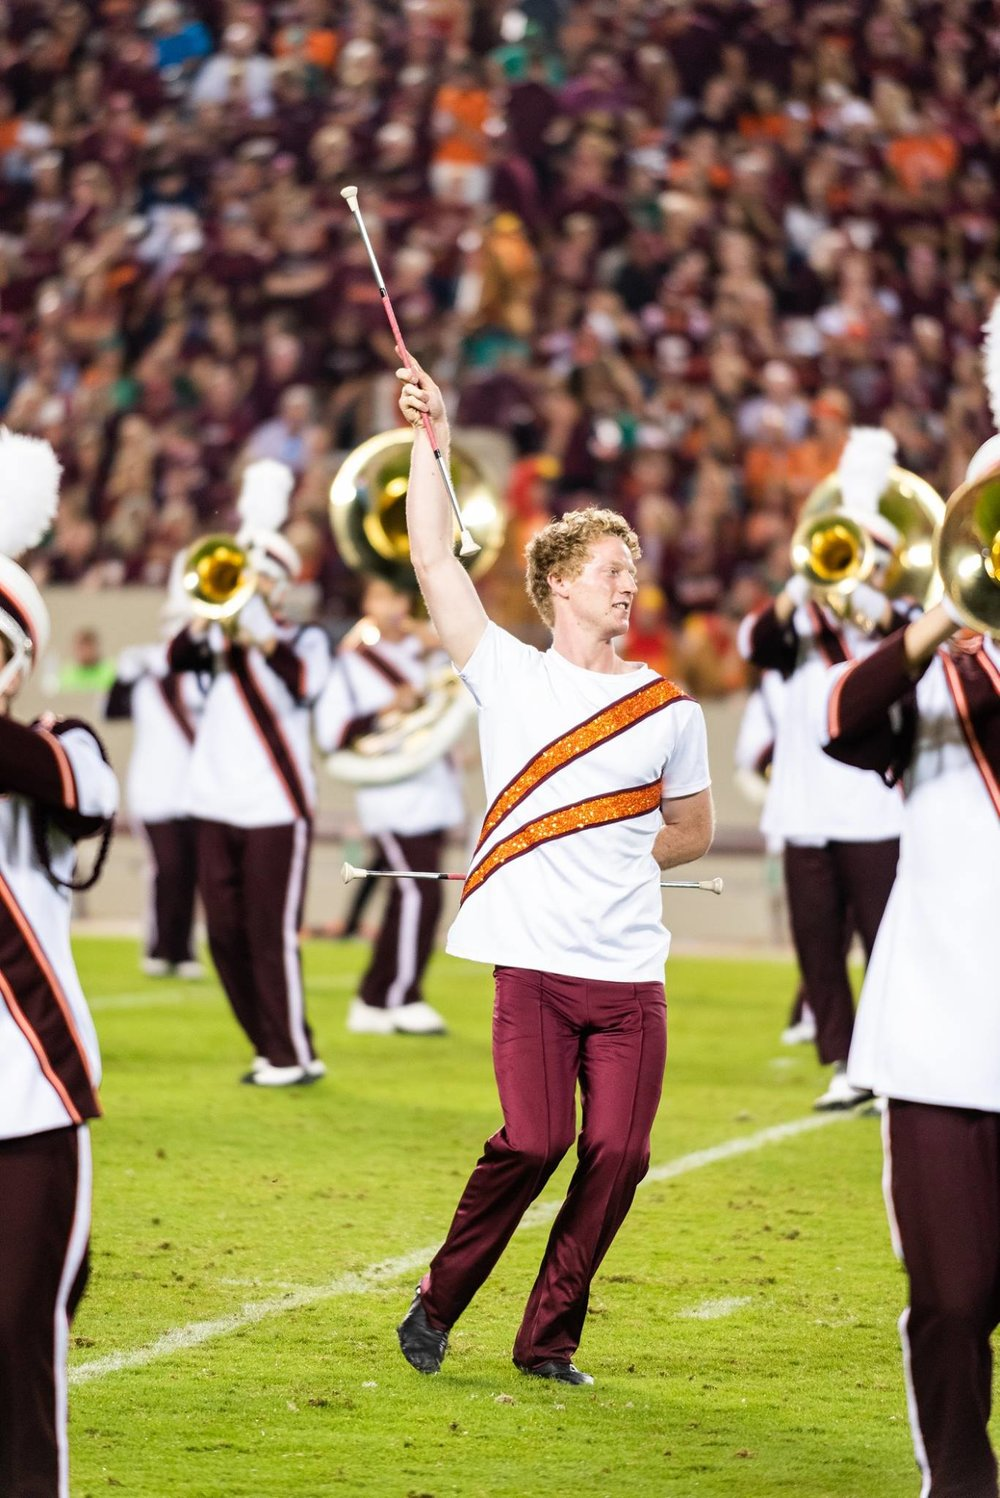 Connor performing on-field in Lane Stadium; Source: Brendan Little